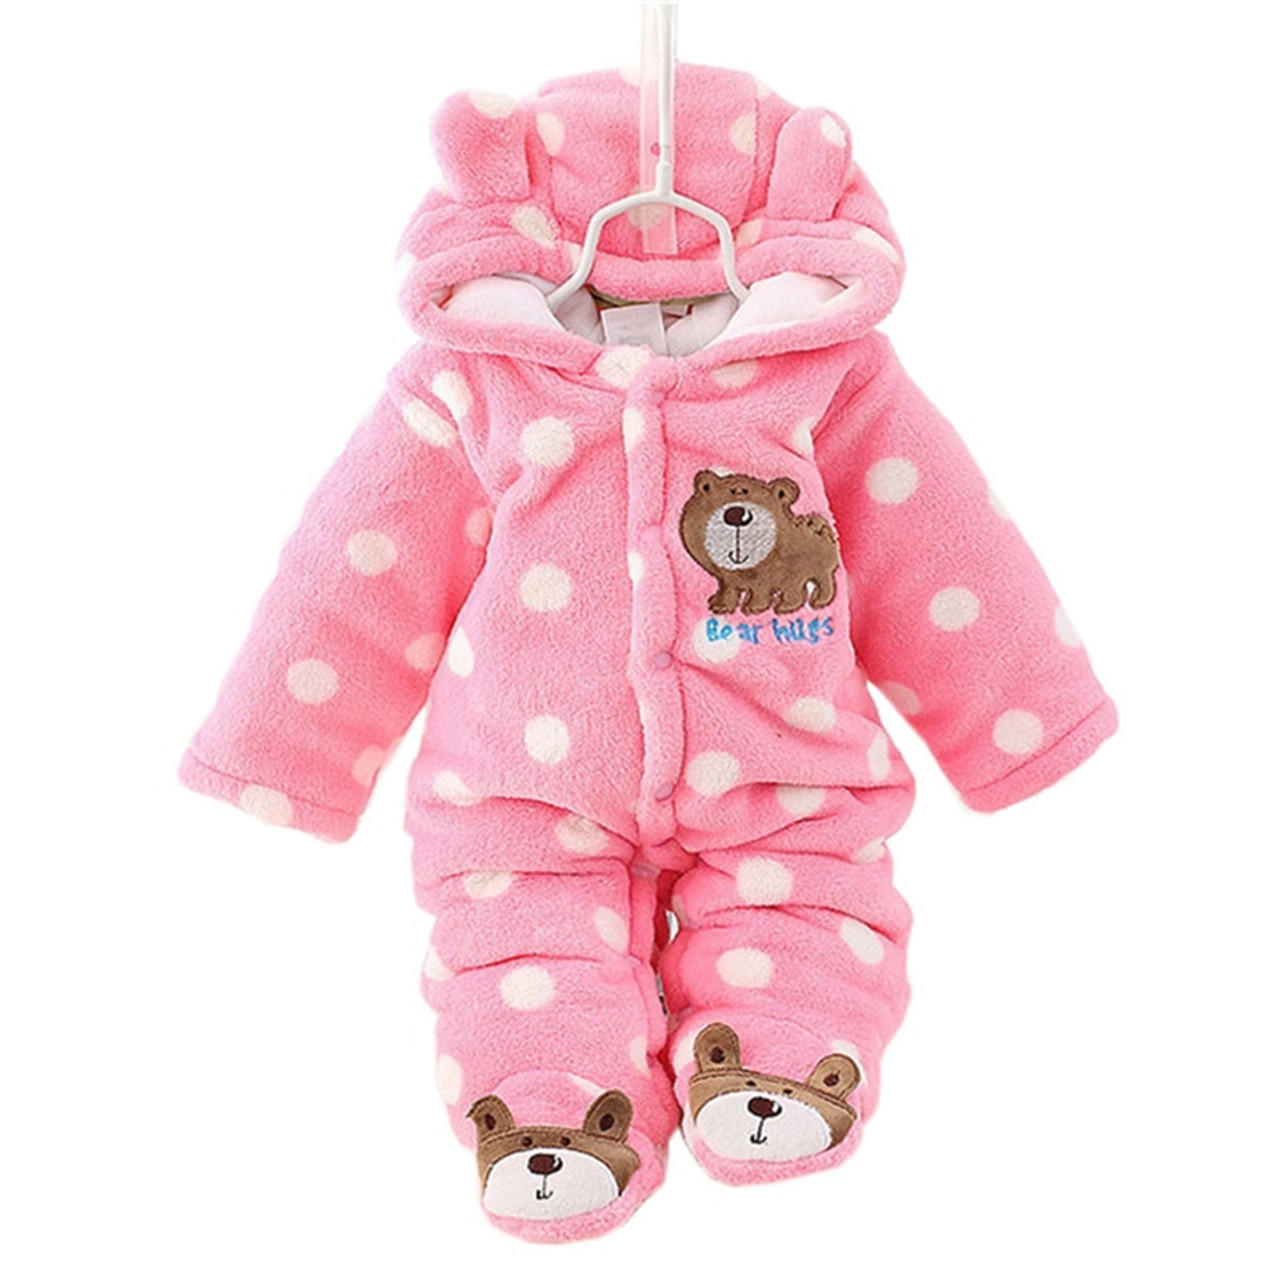 472a22b23 Cotton Baby Rompers Winter Baby Boy Clothes 2017 Baby Girl Clothing Sets  Cute Newborn Baby Clothes ...